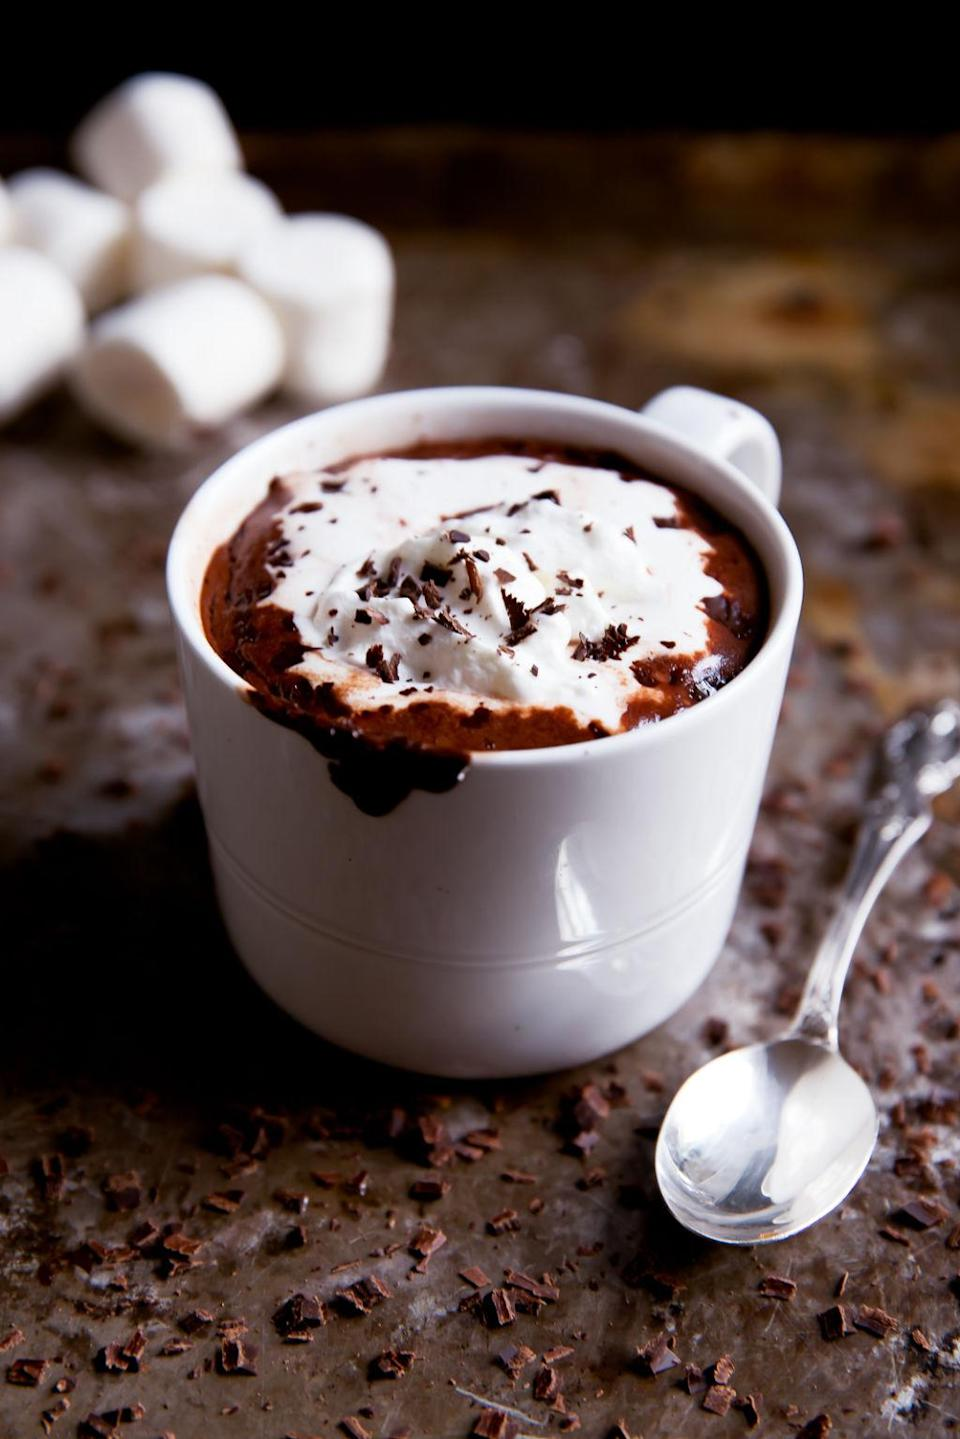 "<p>This recipe's <a href=""http://www.drozthegoodlife.com/healthy-food-nutrition/healthy-recipe-ideas/recipes/a940/spiced-hot-chocolate/"" rel=""nofollow noopener"" target=""_blank"" data-ylk=""slk:list of wholesome ingredients"" class=""link rapid-noclick-resp"">list of wholesome ingredients</a> yields a rewarding creation that will help you relax at the end of a long day.</p><p>Grab the recipe from <a href=""http://www.ambitiouskitchen.com/2015/11/coconut-milk-hot-chocolate/#more-13975"" rel=""nofollow noopener"" target=""_blank"" data-ylk=""slk:Ambitious Kitchen"" class=""link rapid-noclick-resp"">Ambitious Kitchen</a>. </p>"